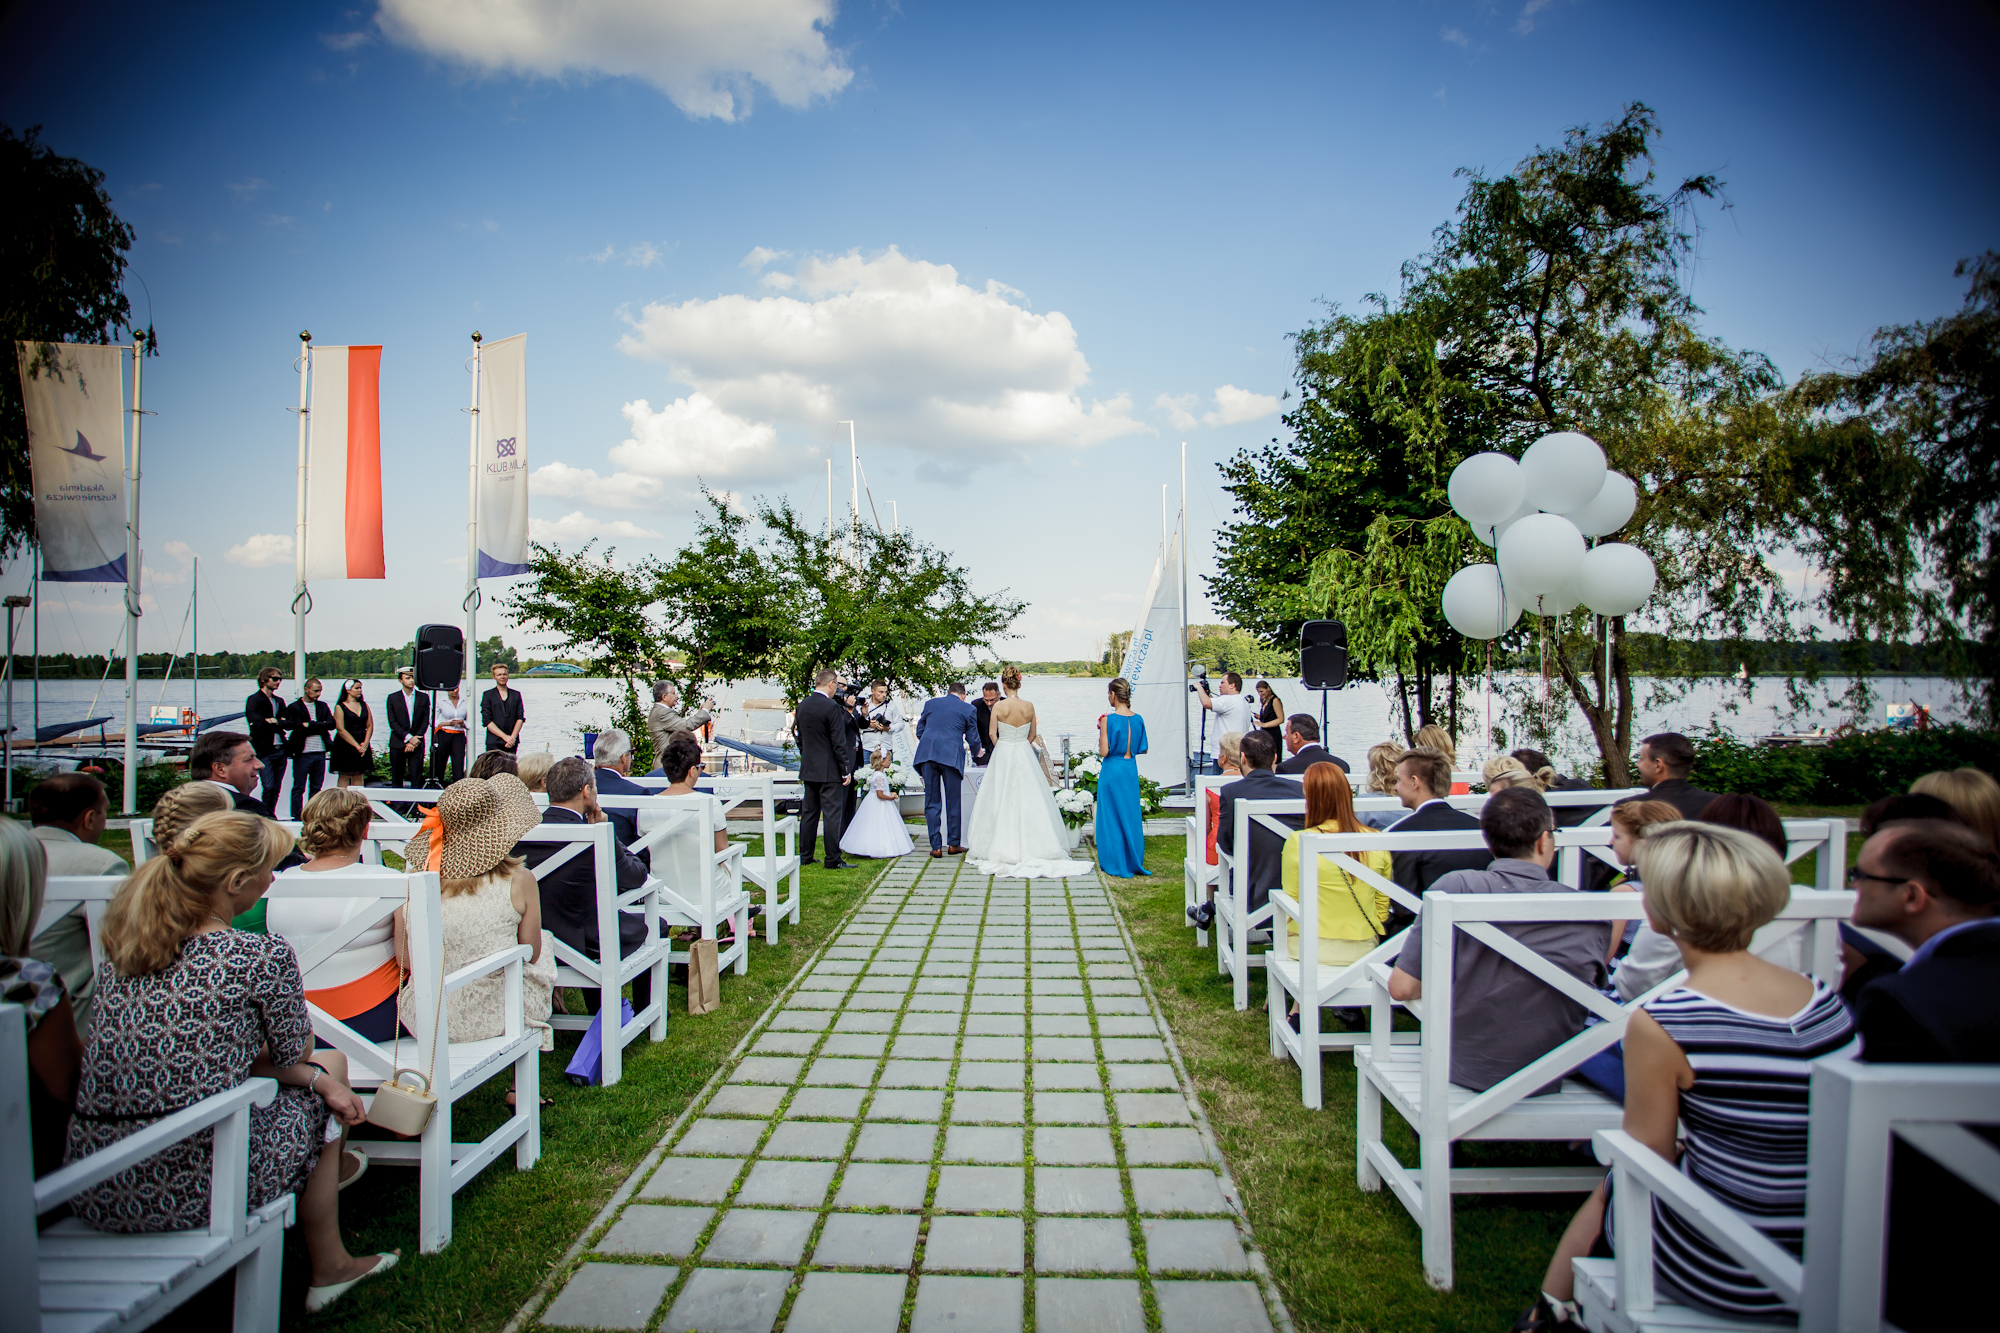 The nuptials on the lake shore